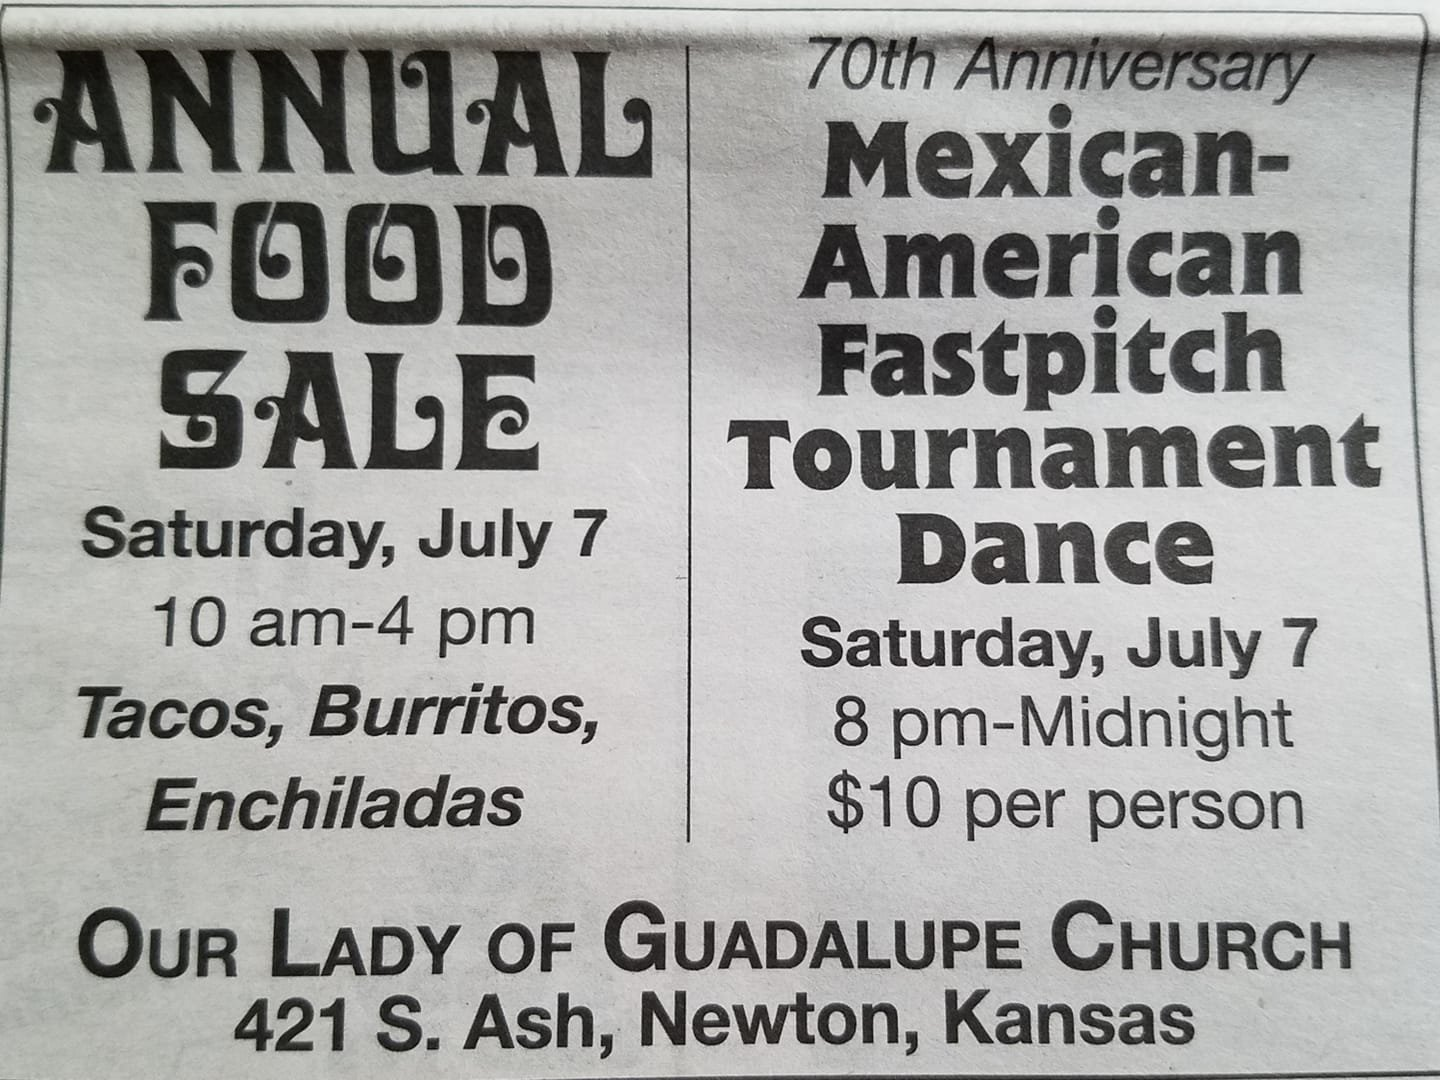 Annual Food Sale at Our Lady of Guadalupe Church in Newton, Kansas.